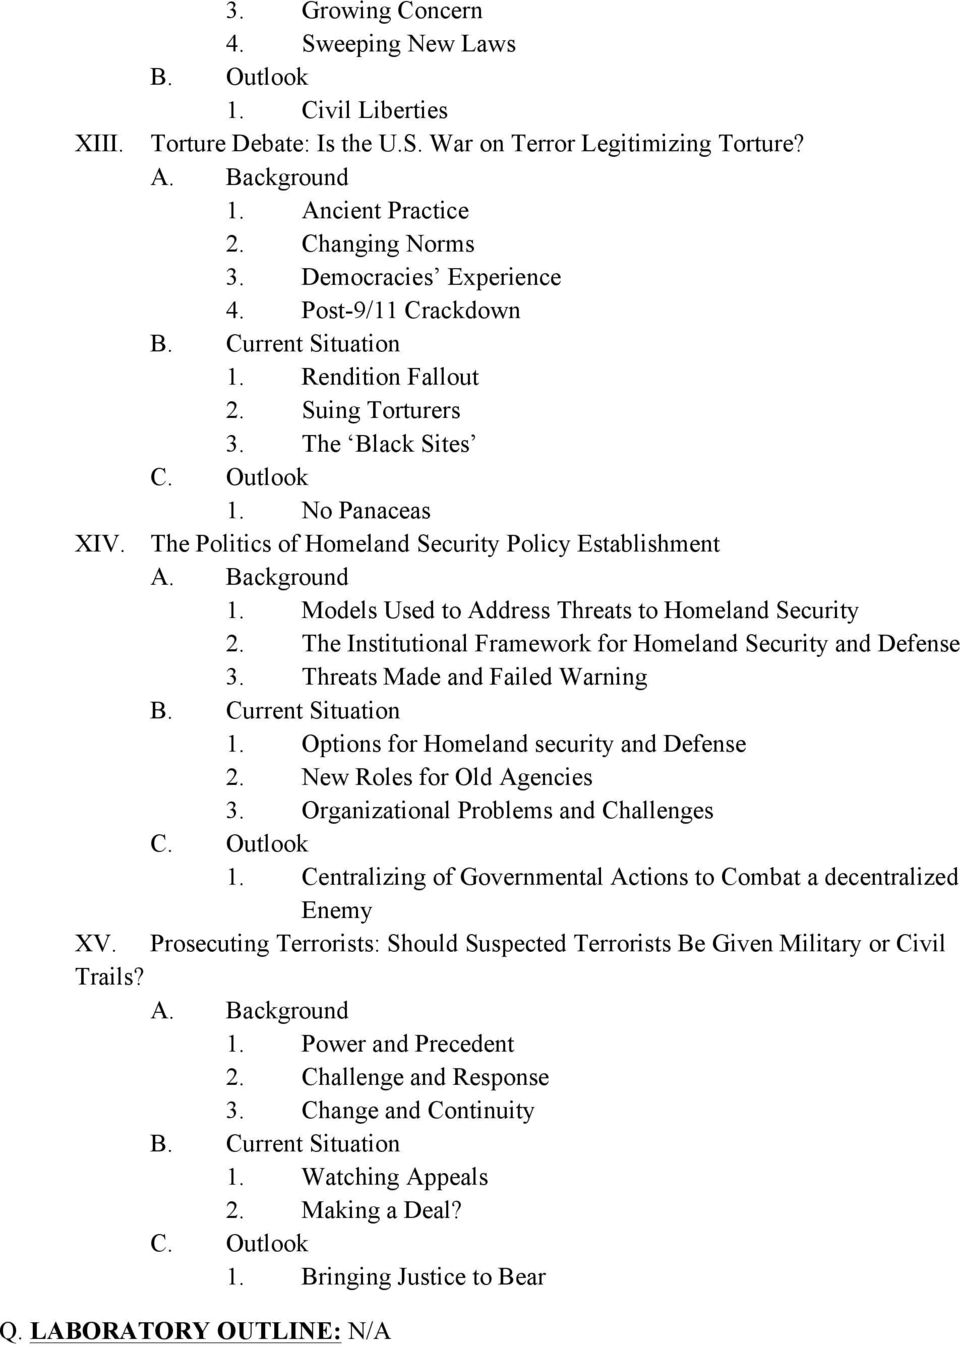 Models Used to Address Threats to Homeland Security 2. The Institutional Framework for Homeland Security and Defense 3. Threats Made and Failed Warning 1. Options for Homeland security and Defense 2.